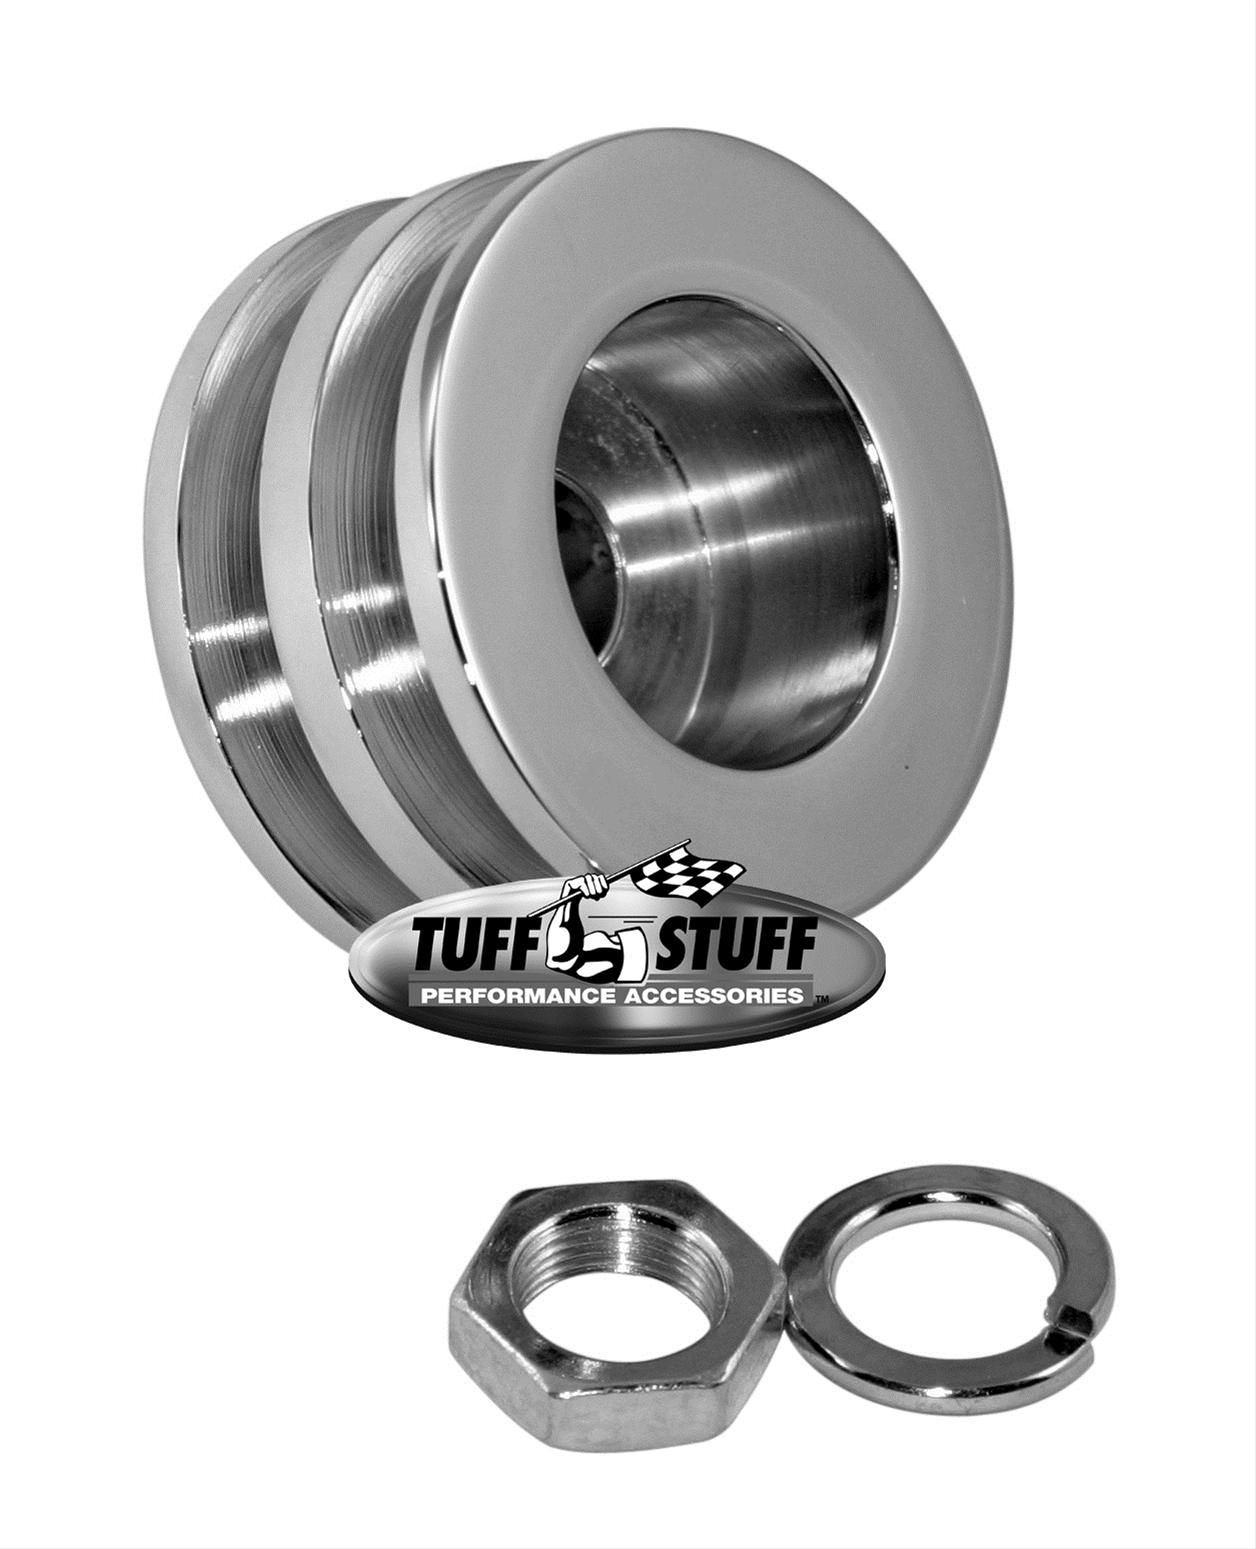 390970231337 together with 940713 Upgraded Alternator Squeal moreover 331396035581 additionally Zoops 8129 Zoops Posi Trak Serpentine Pulley Conversion Kit Serpentine Aluminum Polished Ford 289 302 351w 1963 2001 besides 331936597544. on summit racing serpentine belt kit